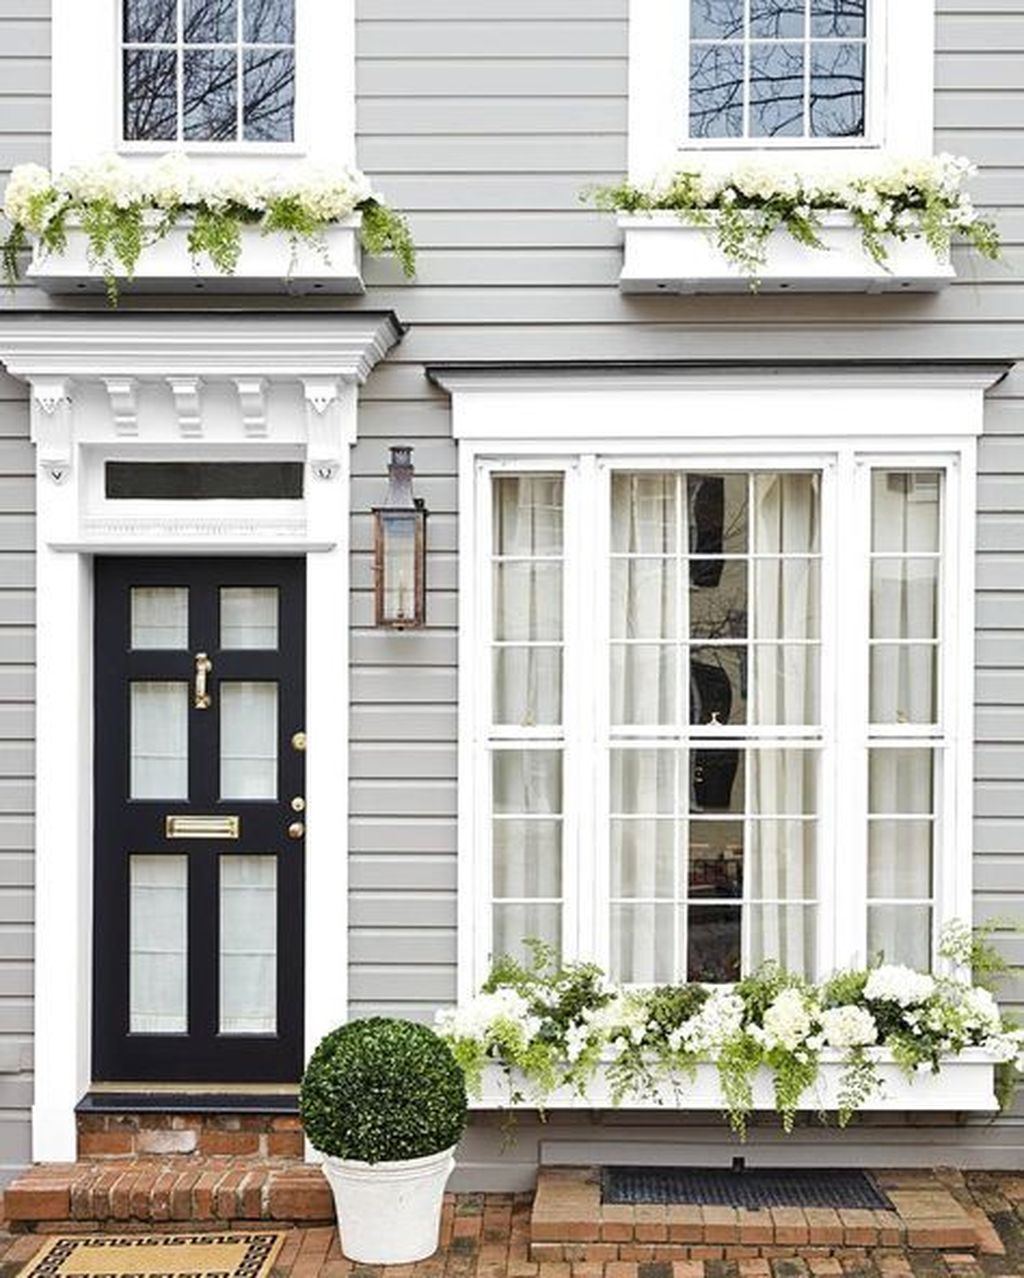 Fabulous Exterior Decoration Ideas With Flower In Window 32